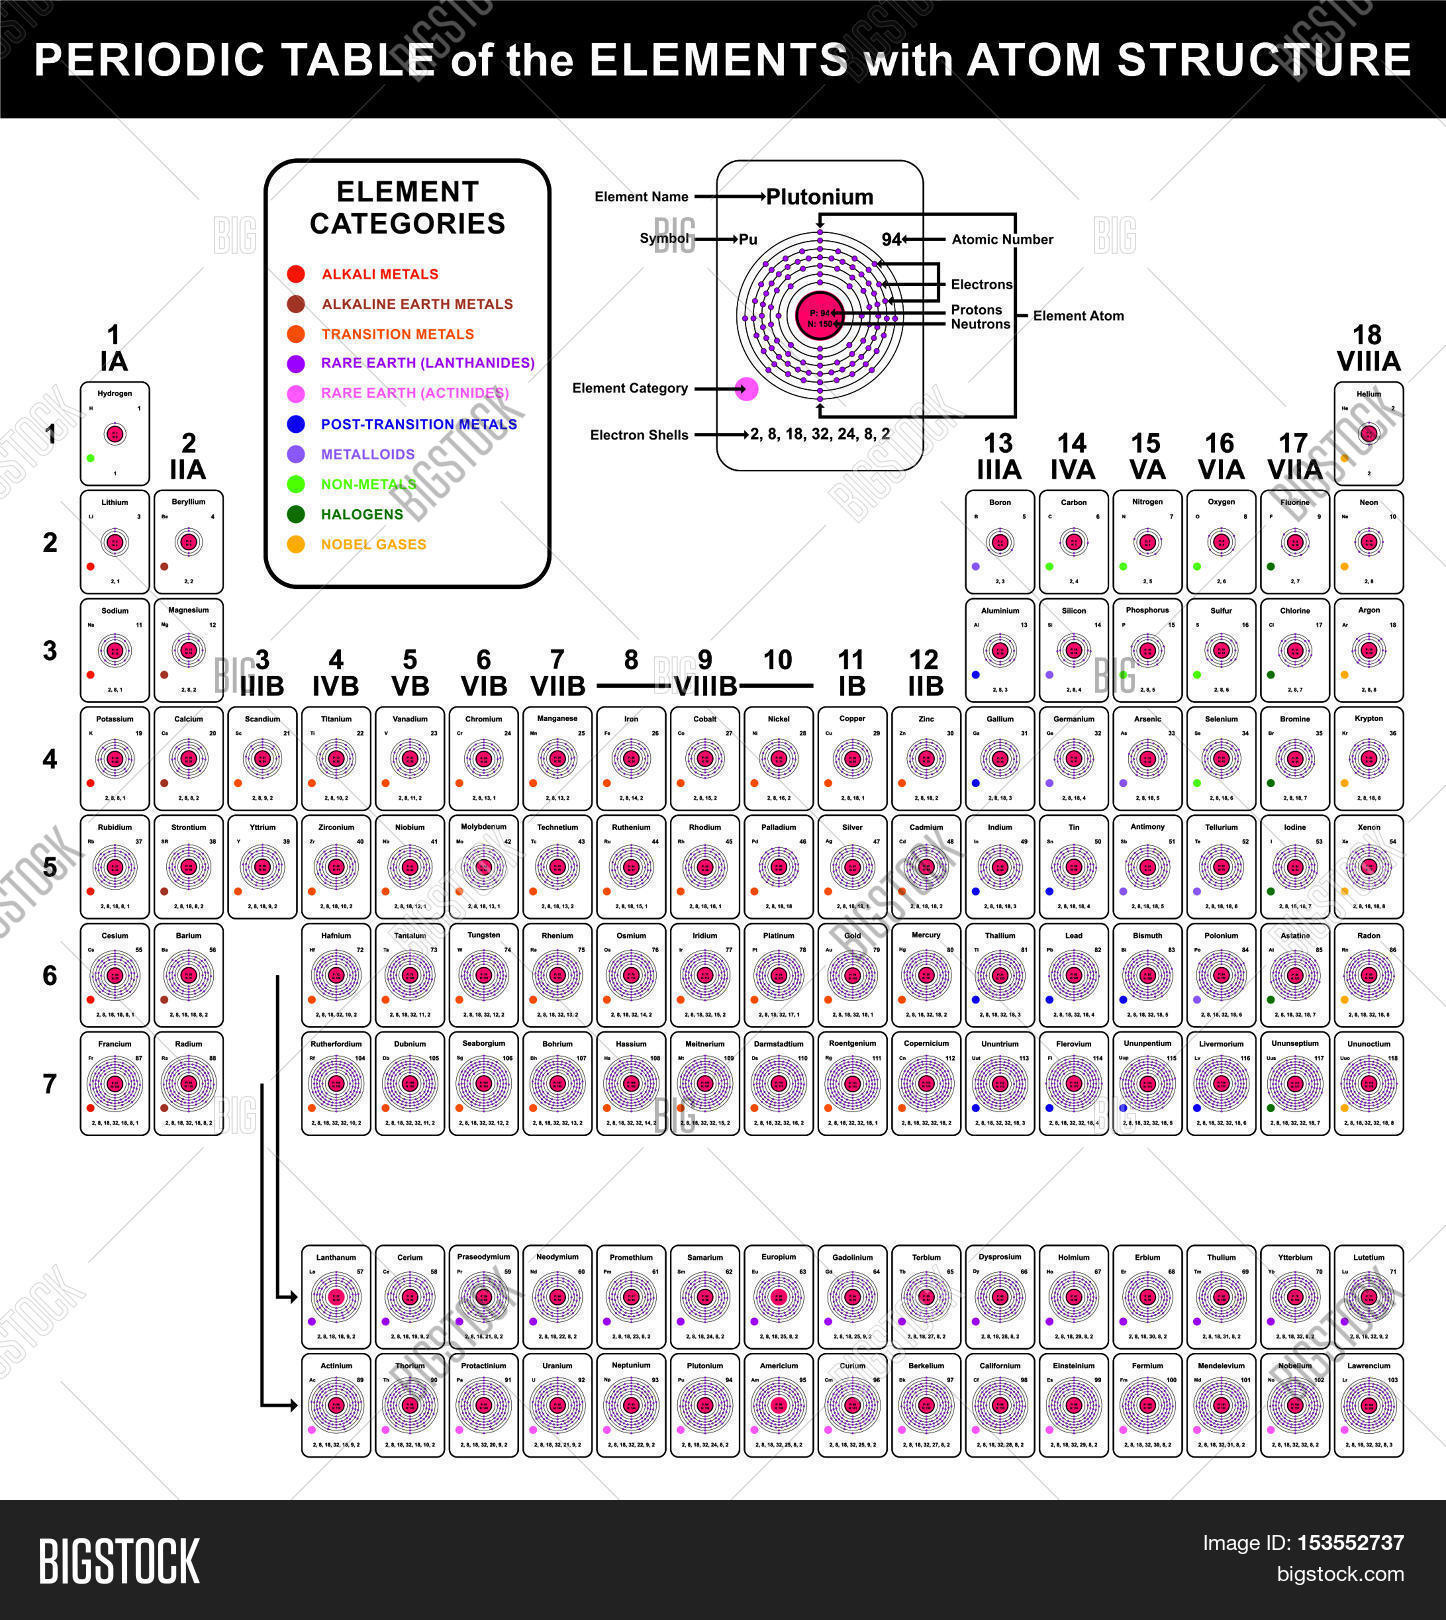 Periodic table elements atom image photo bigstock periodic table of the elements with atom structure all elements atoms with distribution of electrons gamestrikefo Image collections